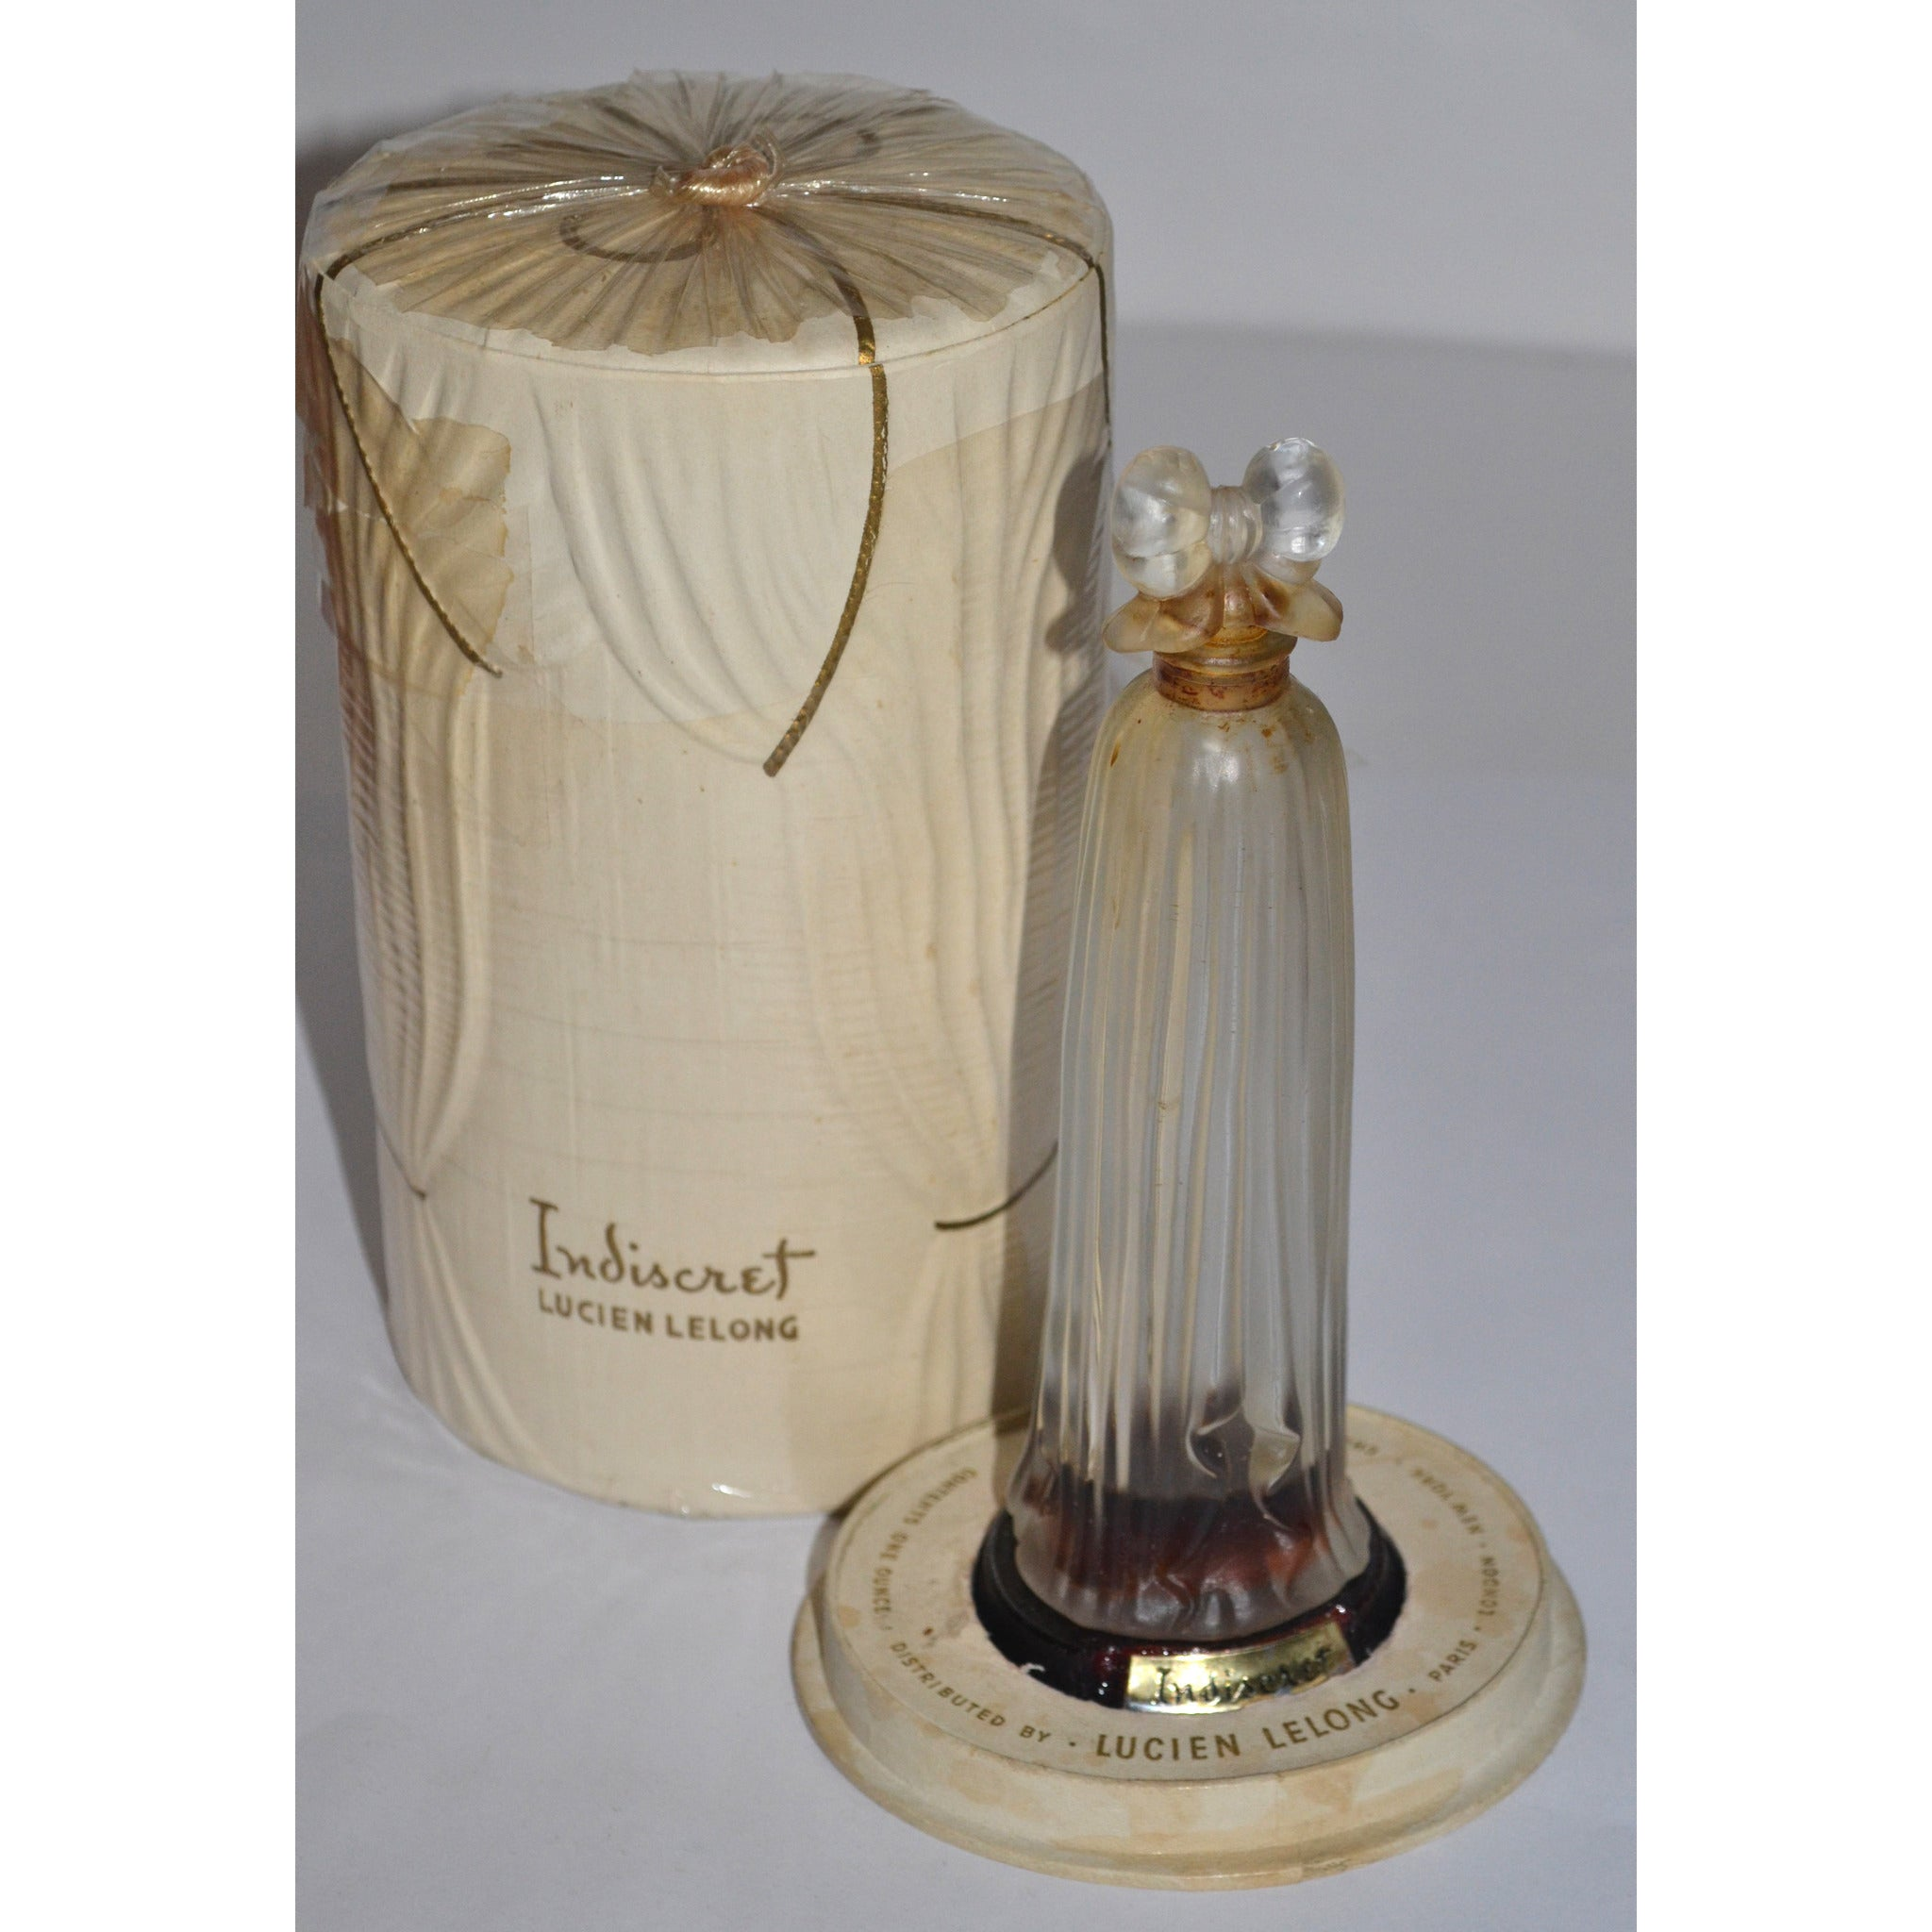 Vintage Indiscret Perfume By Lucien Lelong